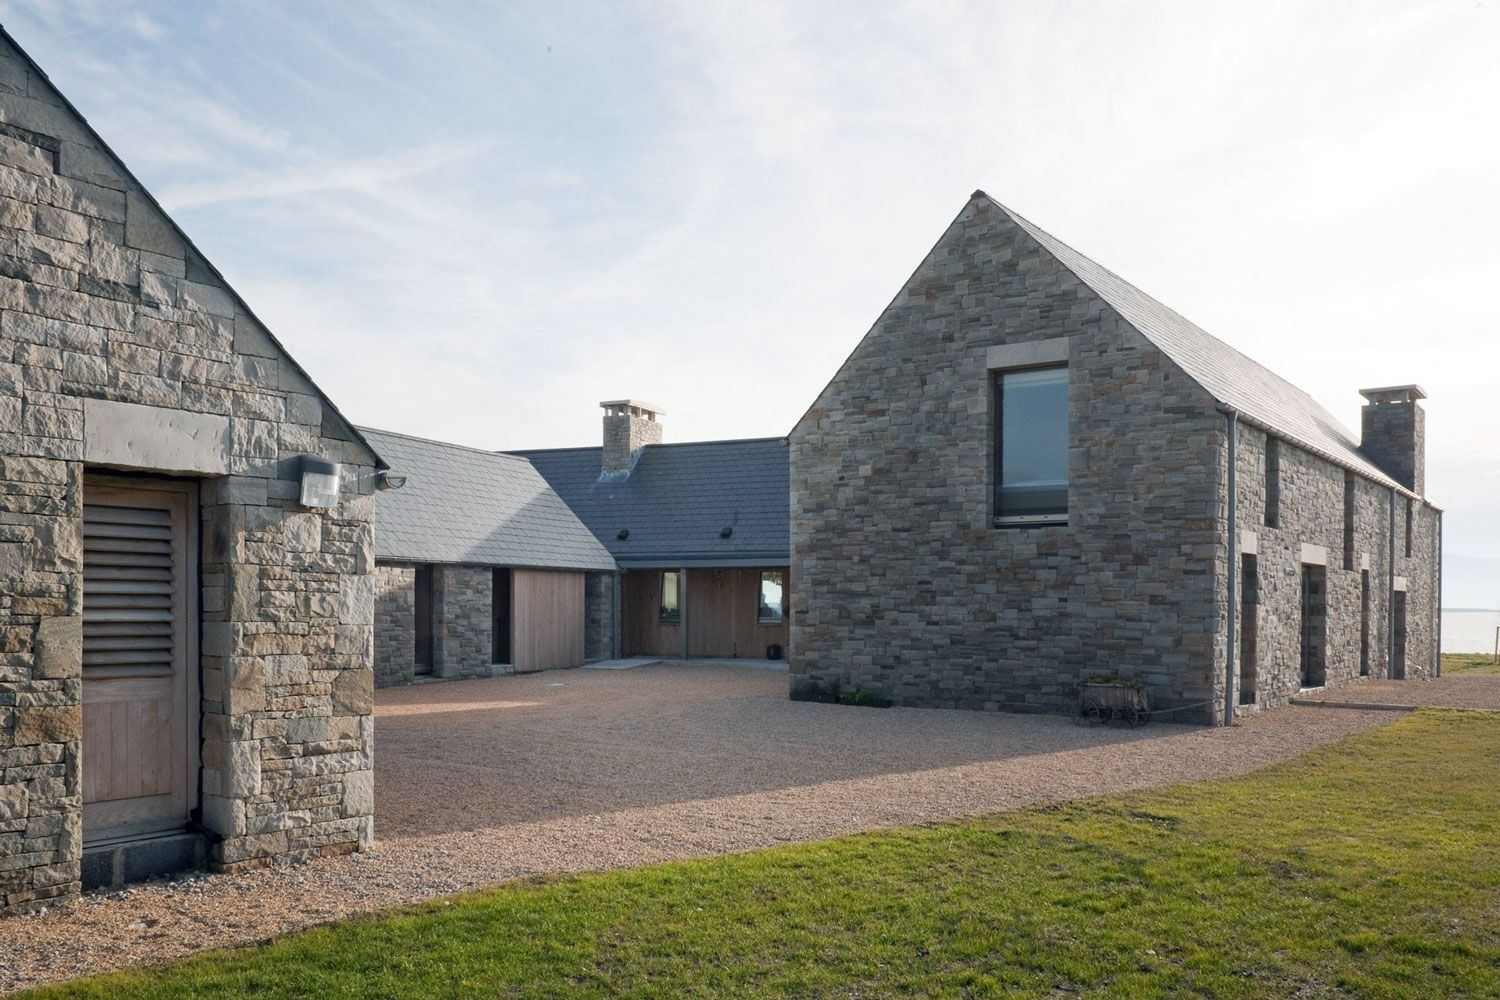 Cottage design irish stone house plans - Donal Colfer Architects Alice Clancy Extension And Renovation Of Ballymorris House Wexford Ireland Divisare Houses Cottages Pinterest